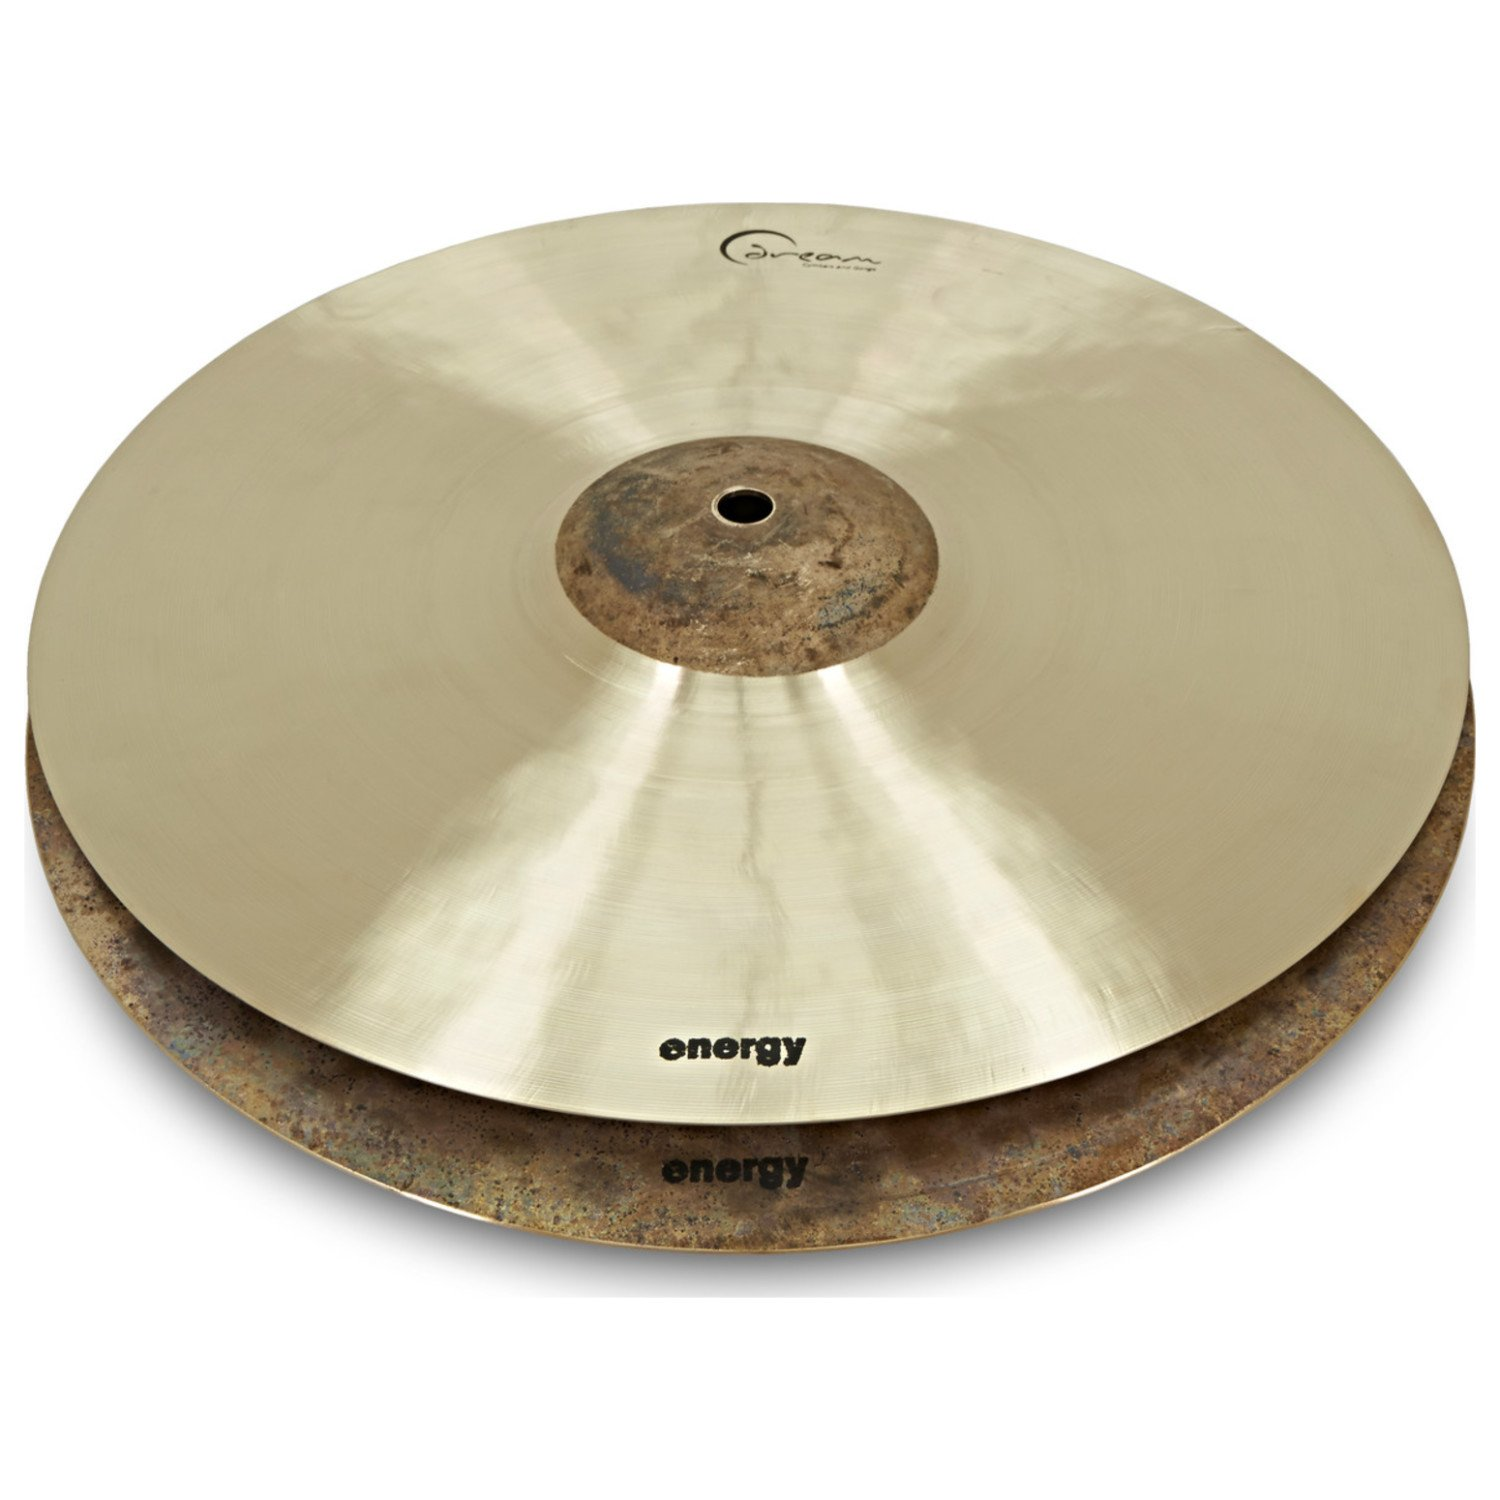 Dream Energy Hi-Hat Cymbals 15''